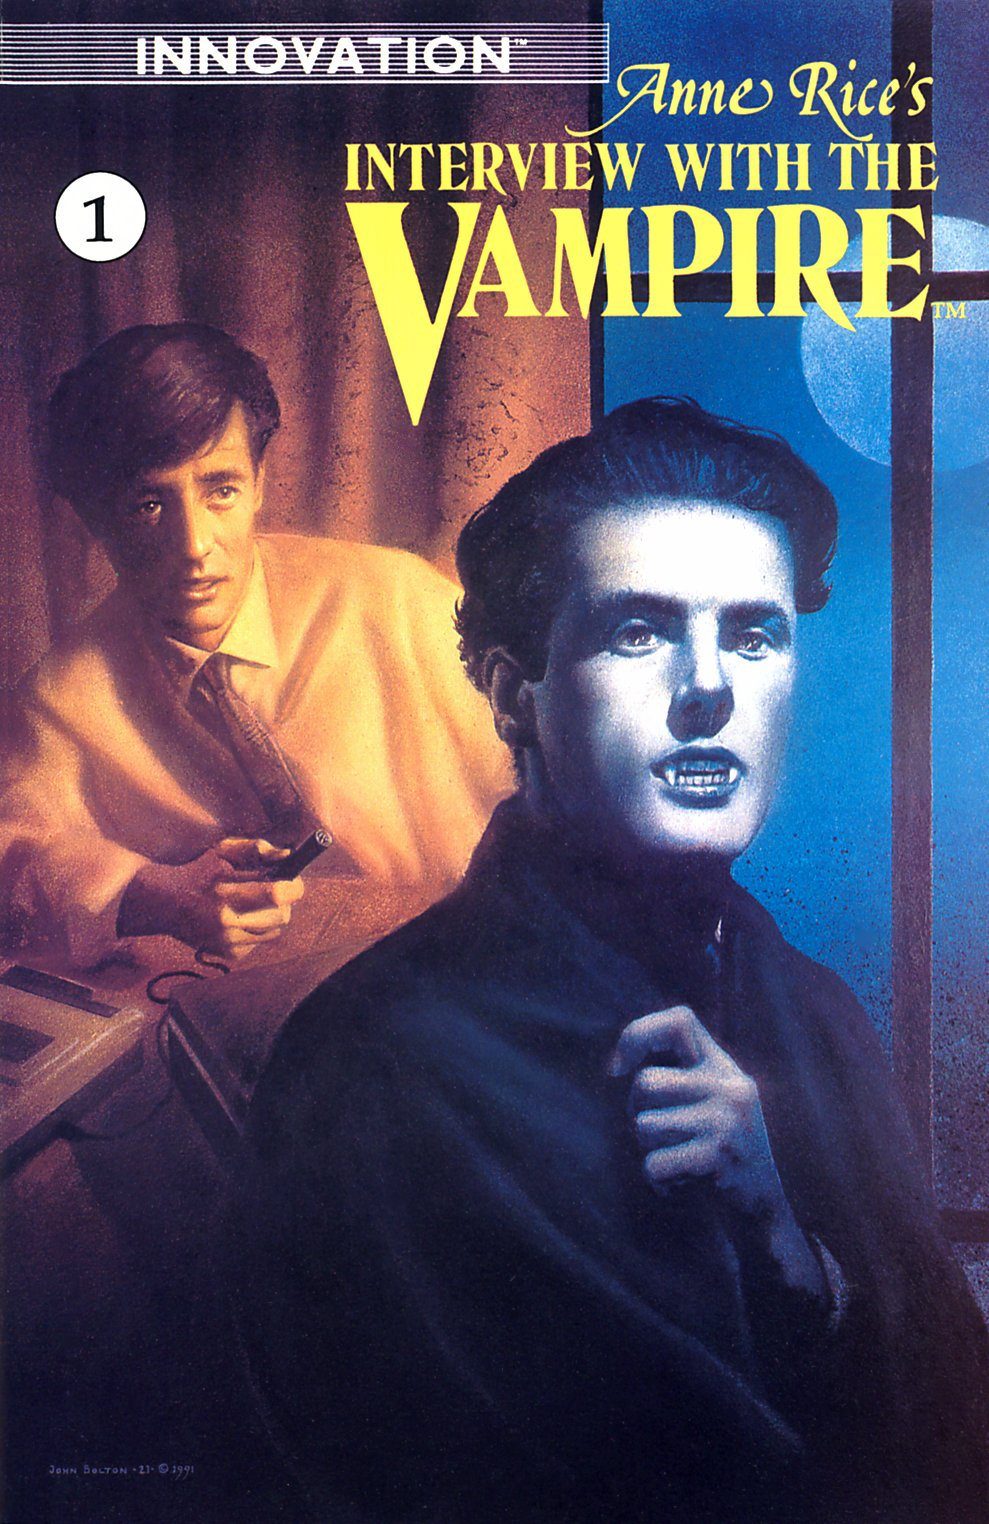 Read online Anne Rice's Interview with the Vampire comic -  Issue #1 - 1